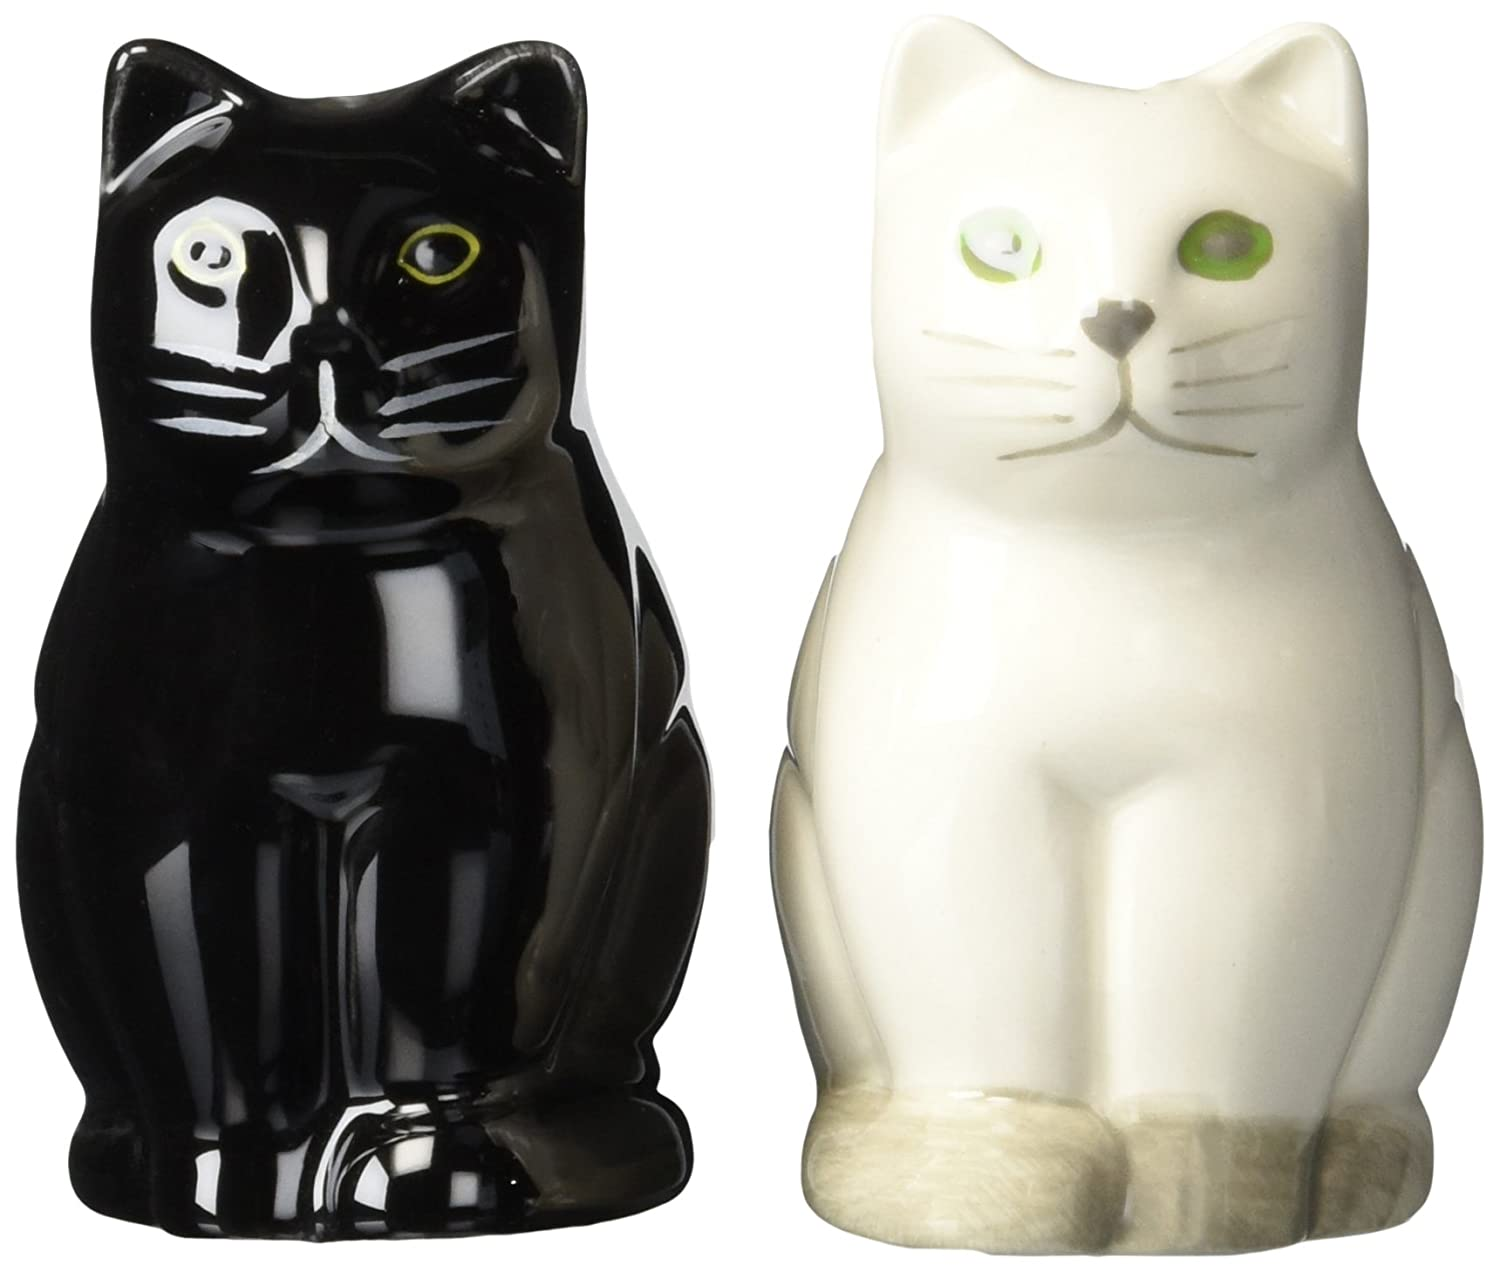 Abbott 27-FELINE Collection Cat Salt & Pepper Shakers SPACHI